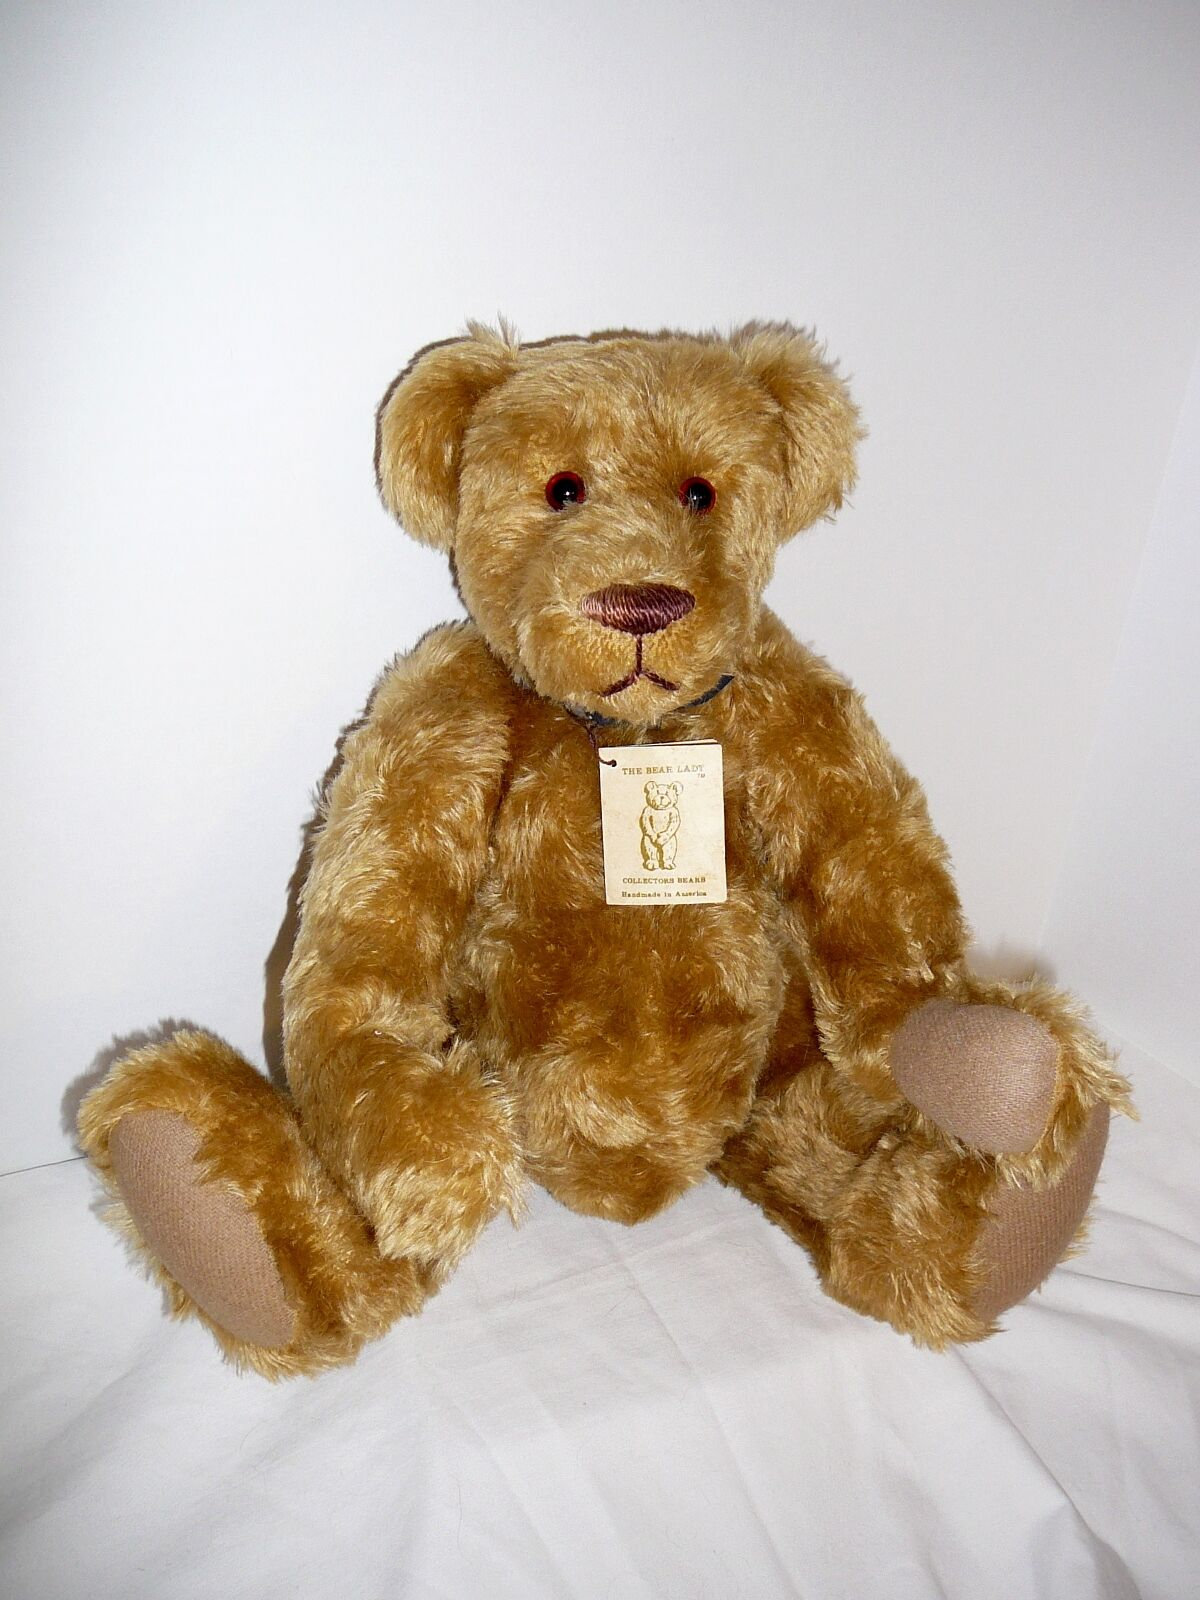 DUDLEY 17 1 2  Bear created by The Bear Lady OOAK designed by Monty Sours